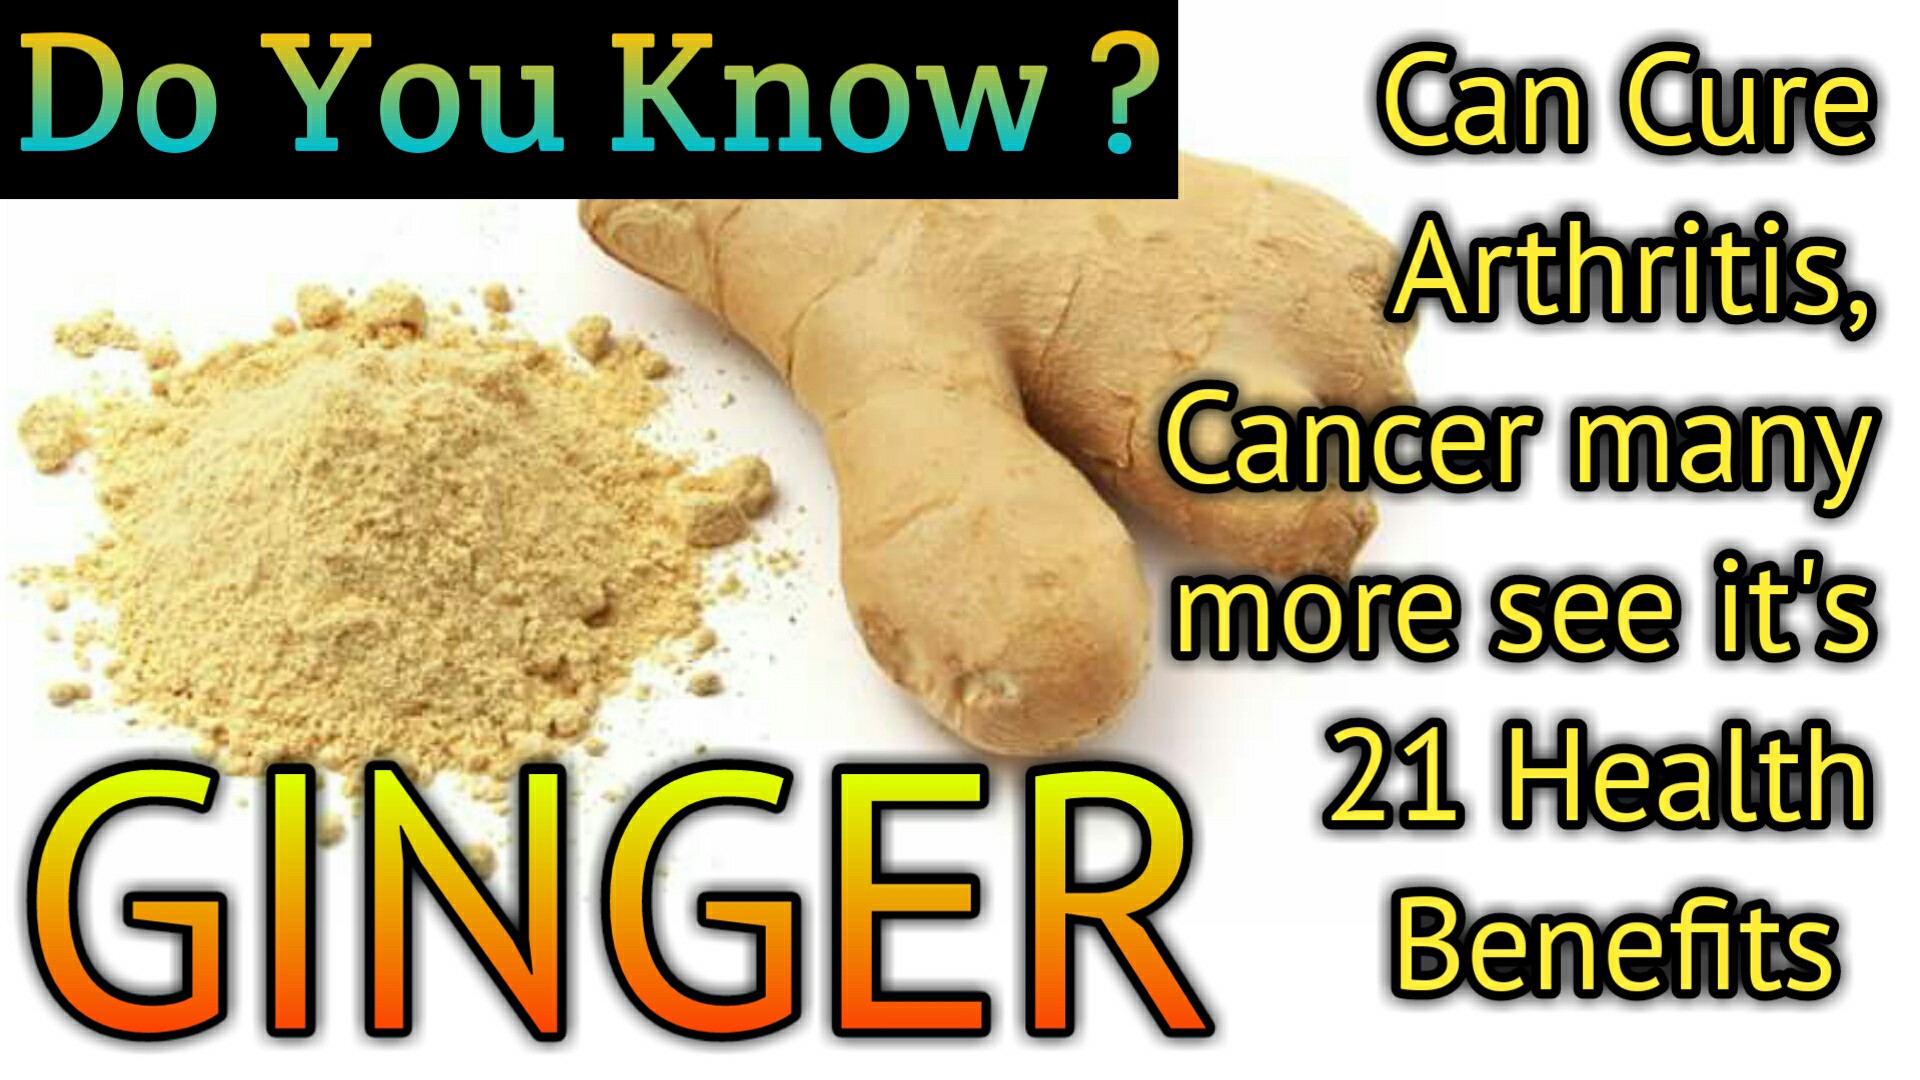 Health benefits of ginger keep you healthy for longer time